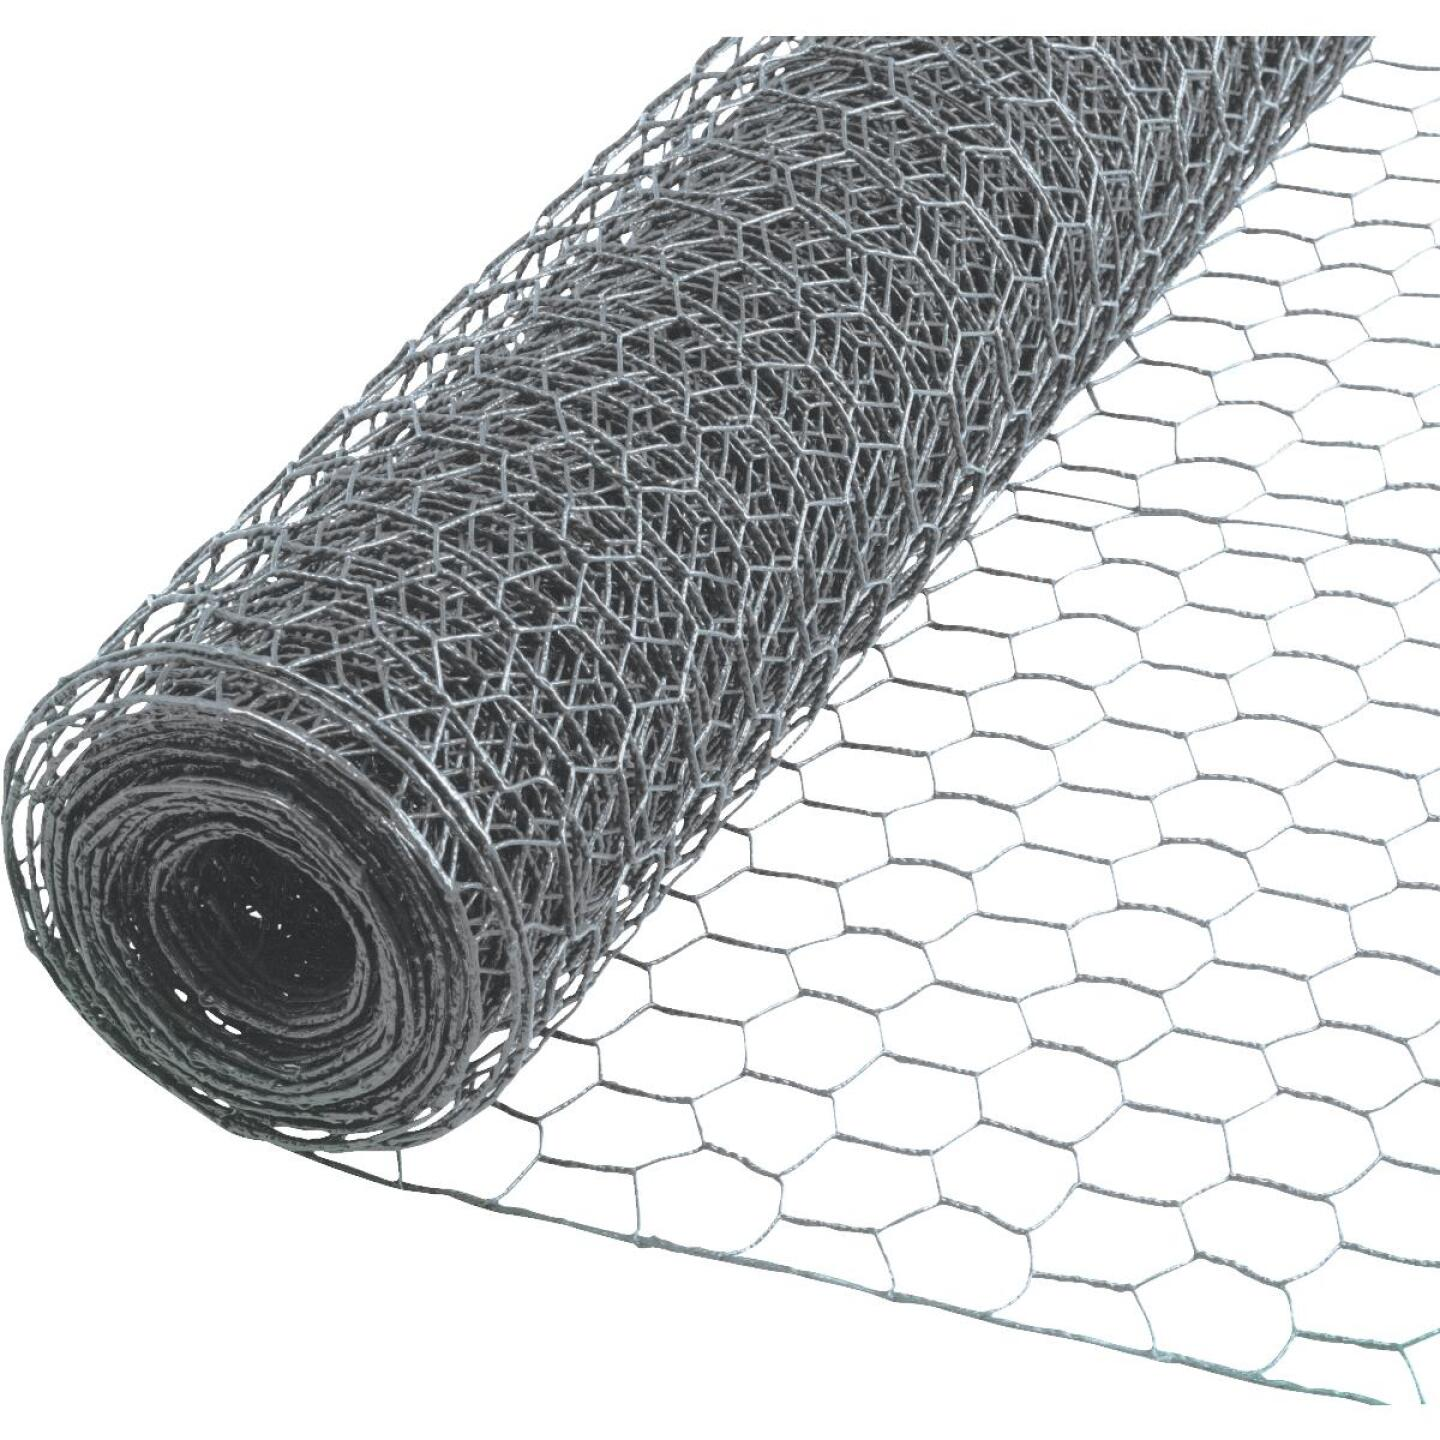 1/2 In. x 24 In. H. x 25 Ft. L. Hexagonal Wire Poultry Netting Image 1